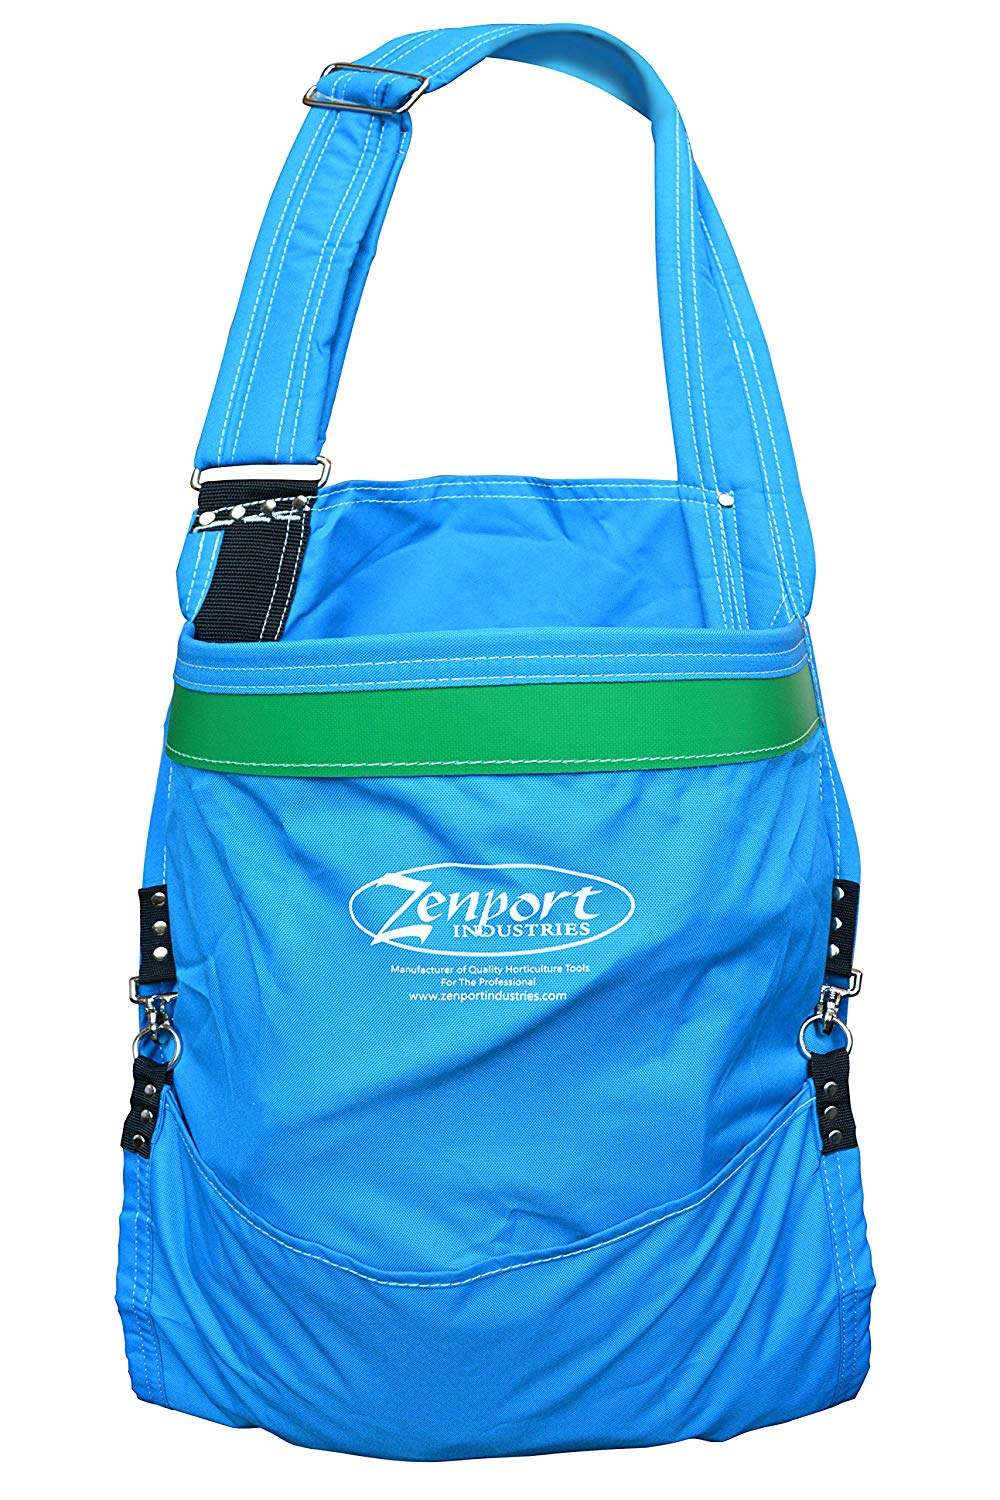 Zenport Picking Bag AG413 80-Pound Sling Soft Shell Harvest Fruit Apple que escoge Bolsa